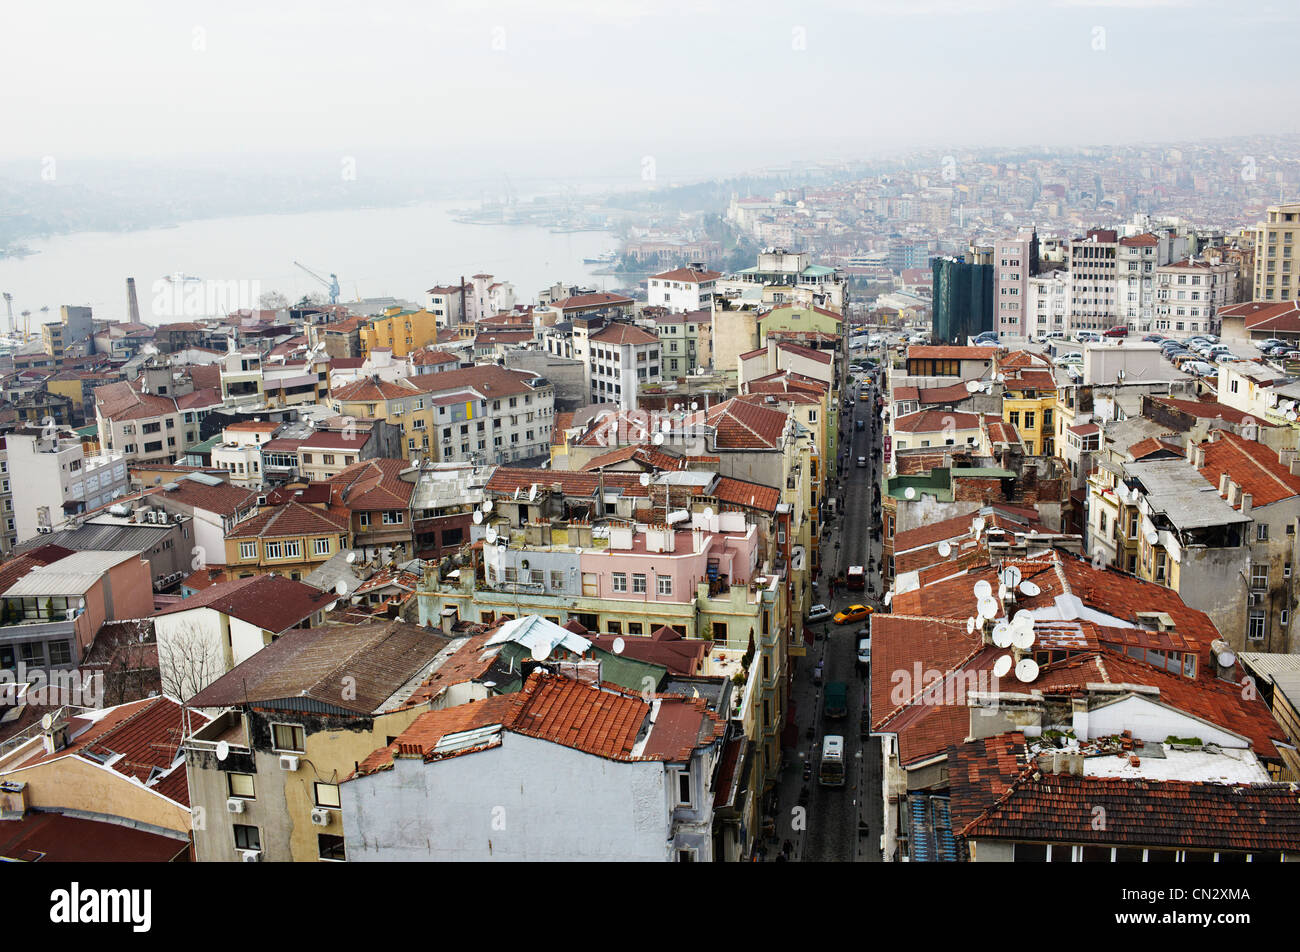 Buildings and rooftops, Istanbul, Turkey - Stock Image